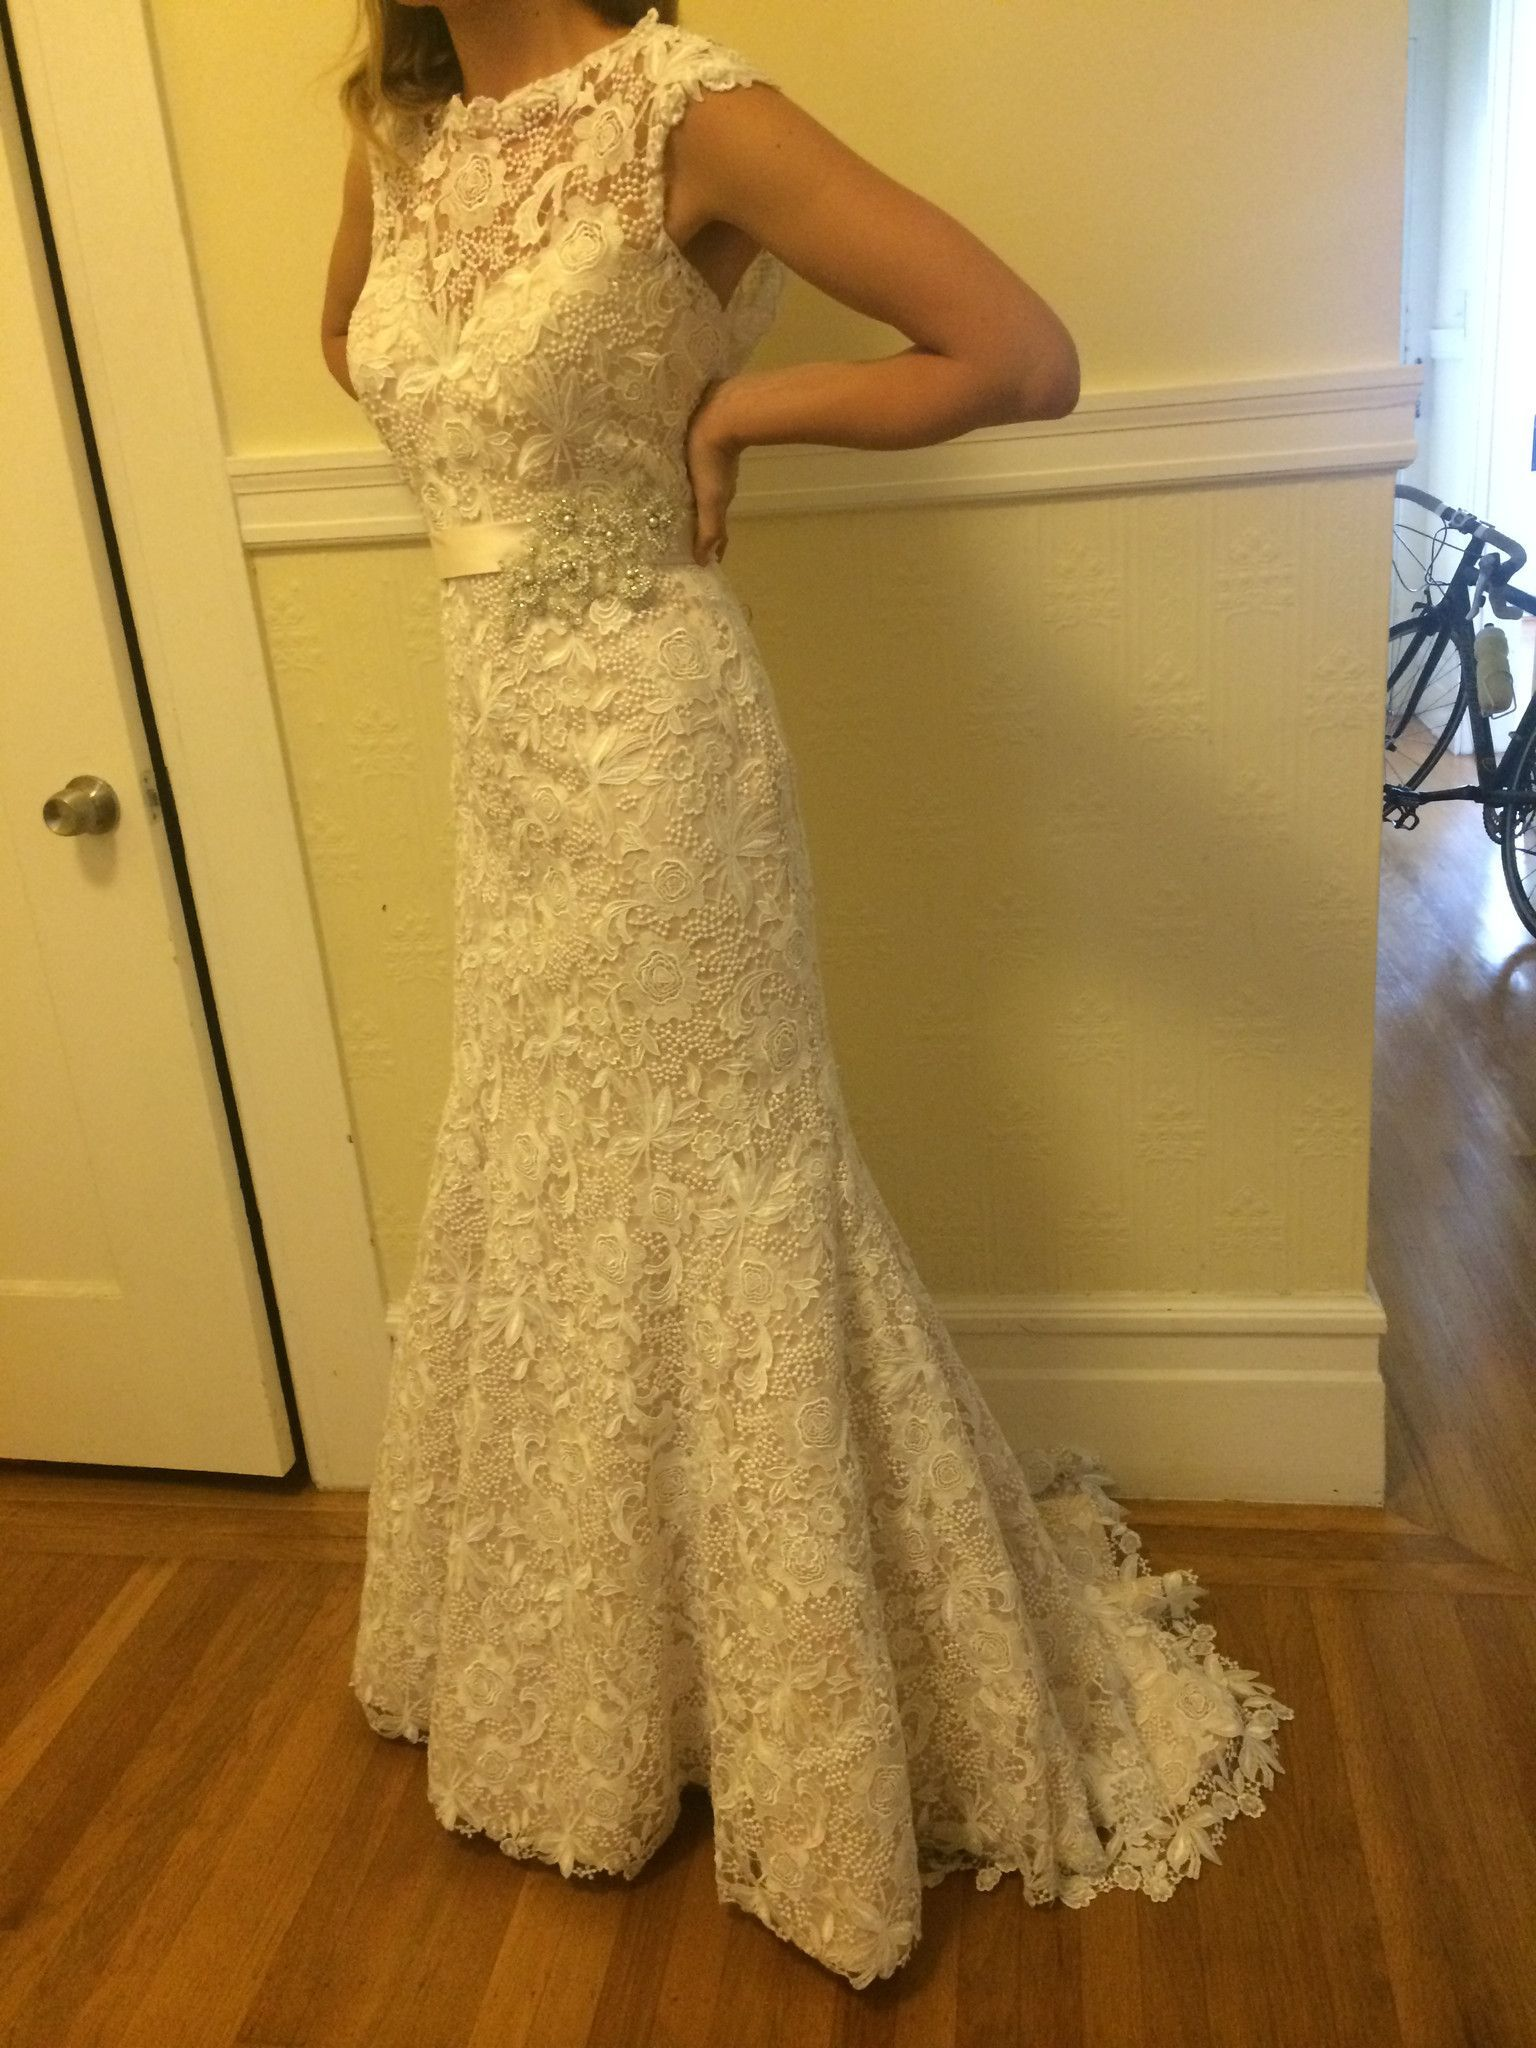 This will be my dress one day when i say